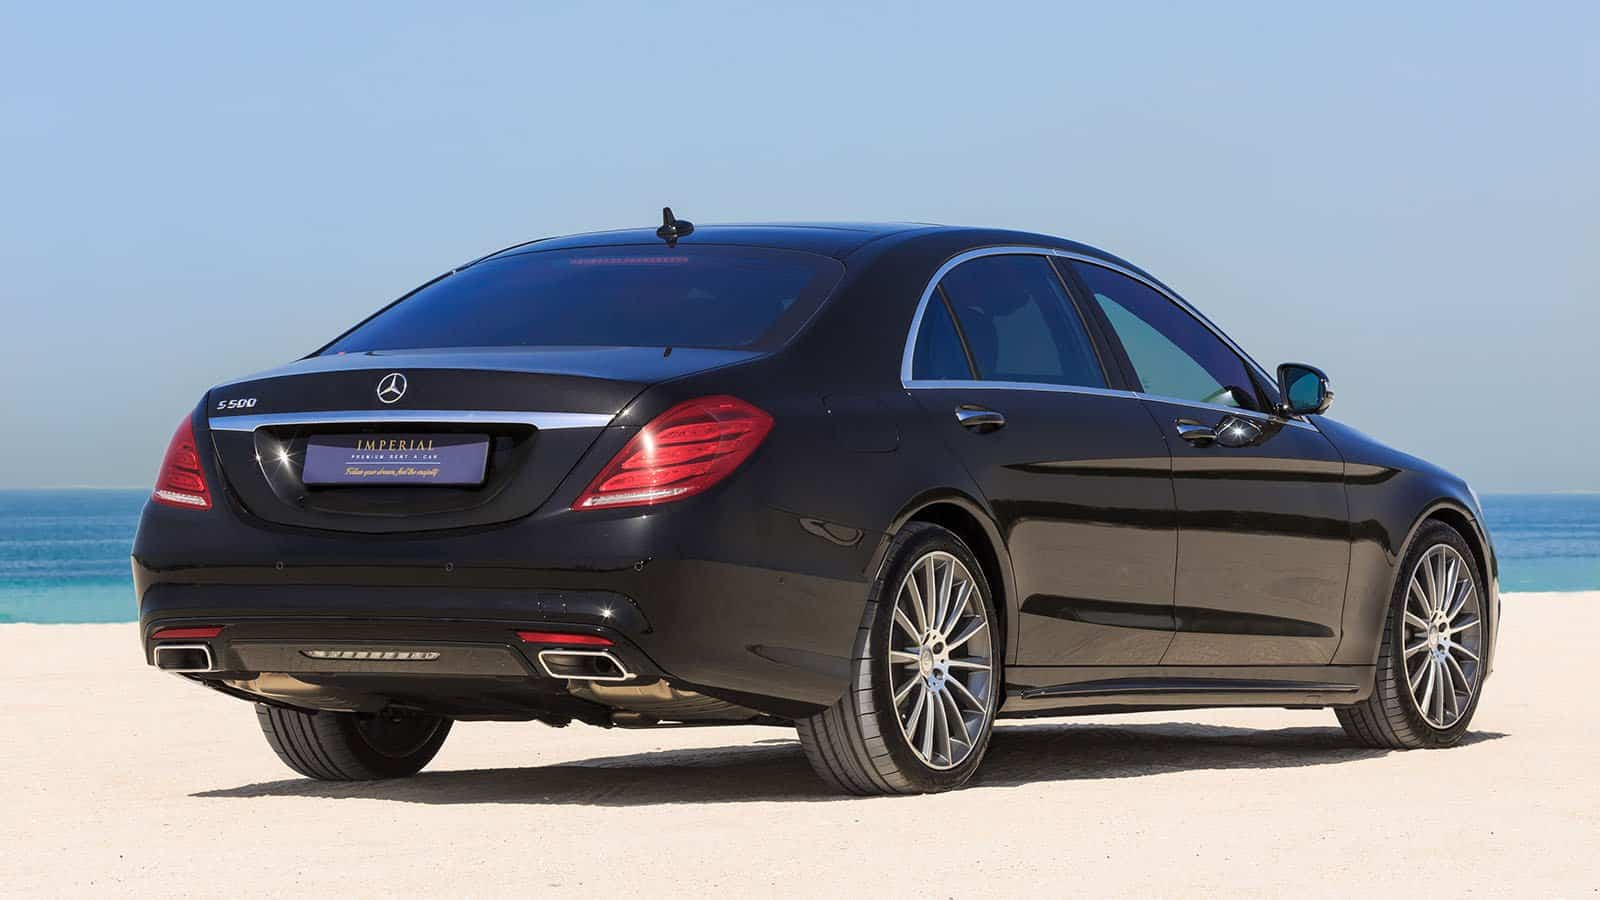 Mercedes Benz S400 Rent Dubai Imperial Premium Rent A Car